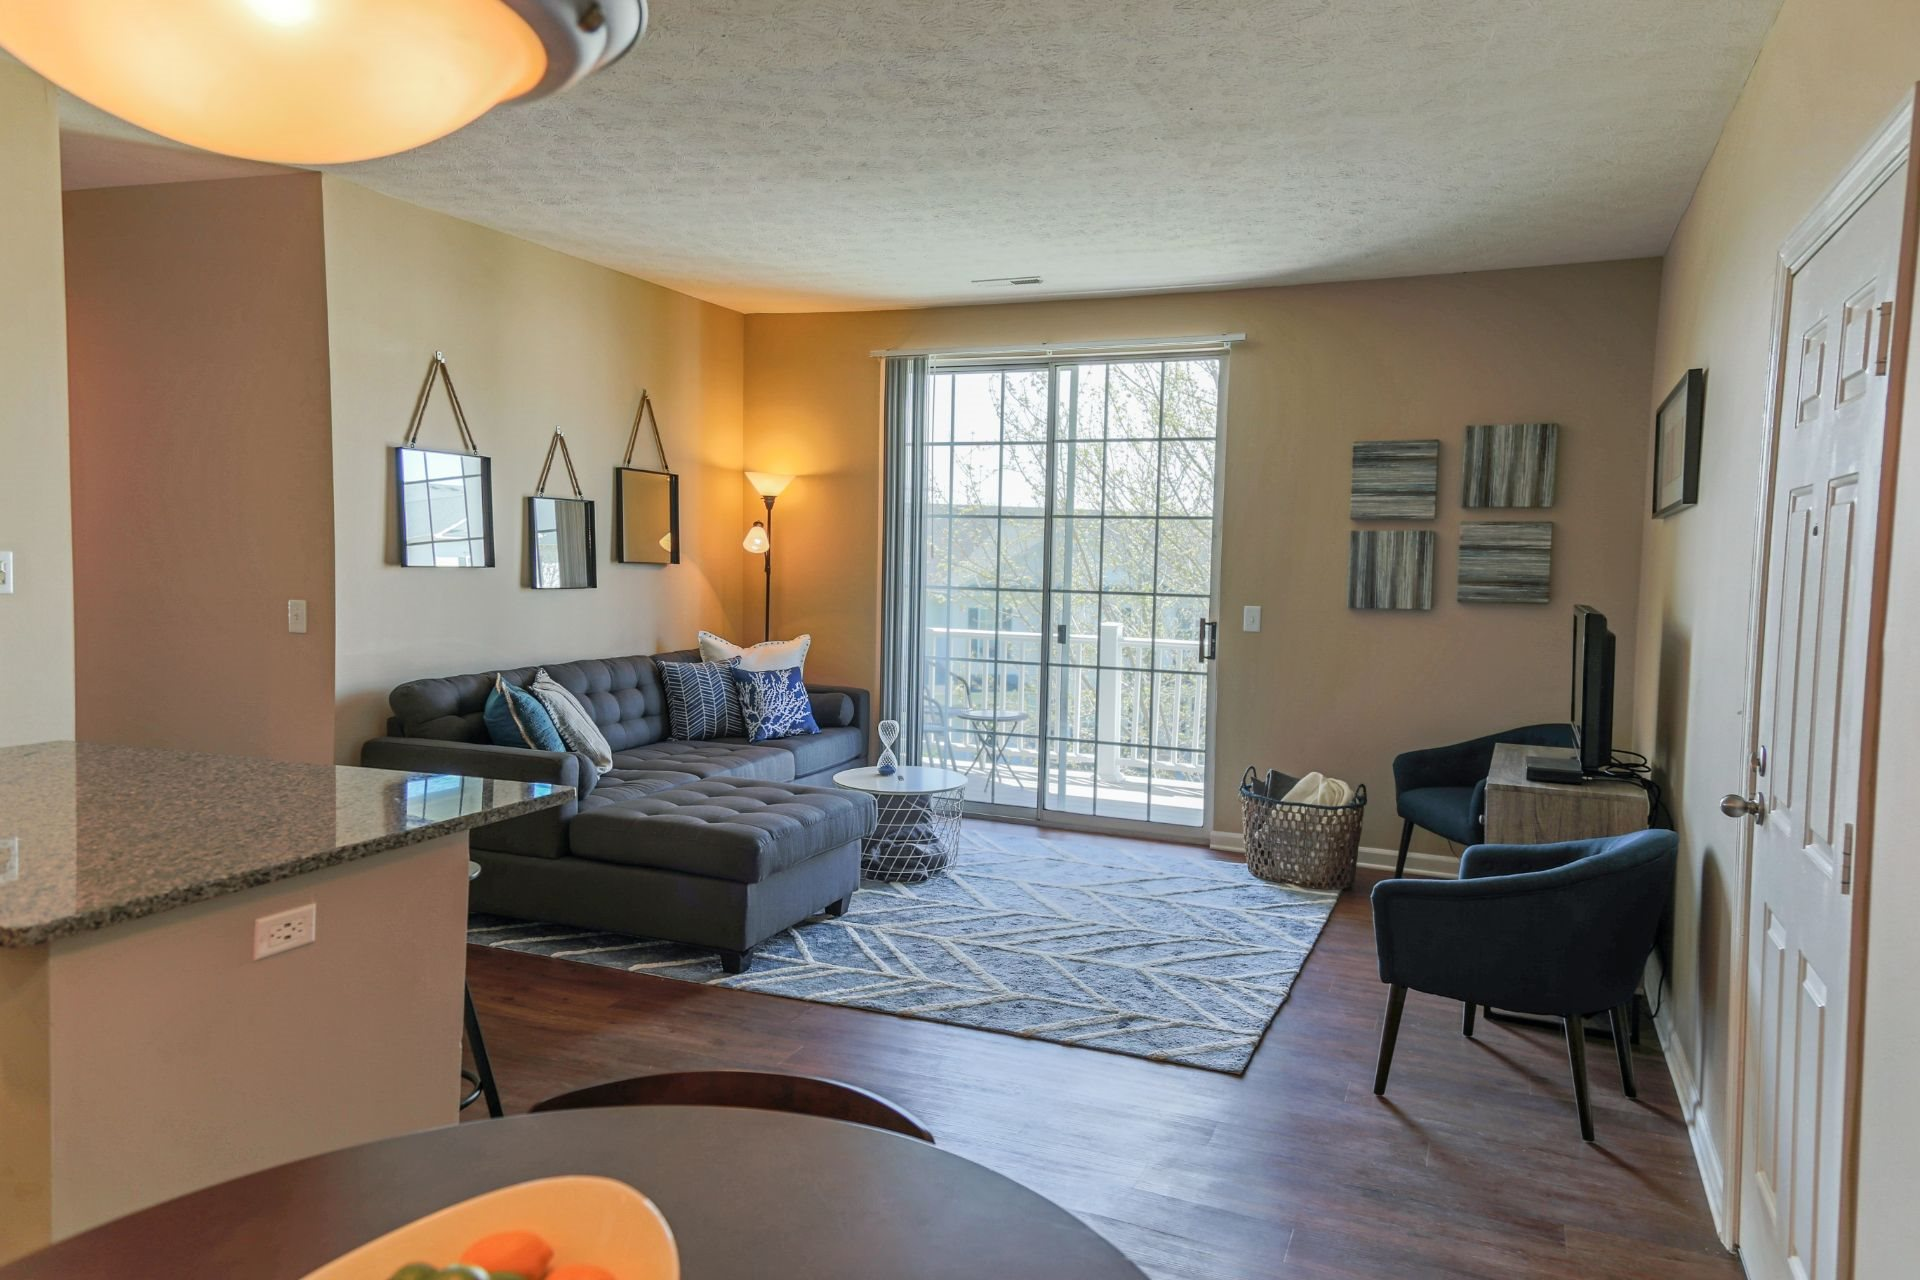 Luxury 1, 2 and 3 Bedroom Apartments and Townhomes in West Chester OH with Open Concept Living and Private Balcony or Patio--The Preserve at Beckett Ridge Apartments and Townhomes-2515 Fox Sedge Way, West Chester OH 45069